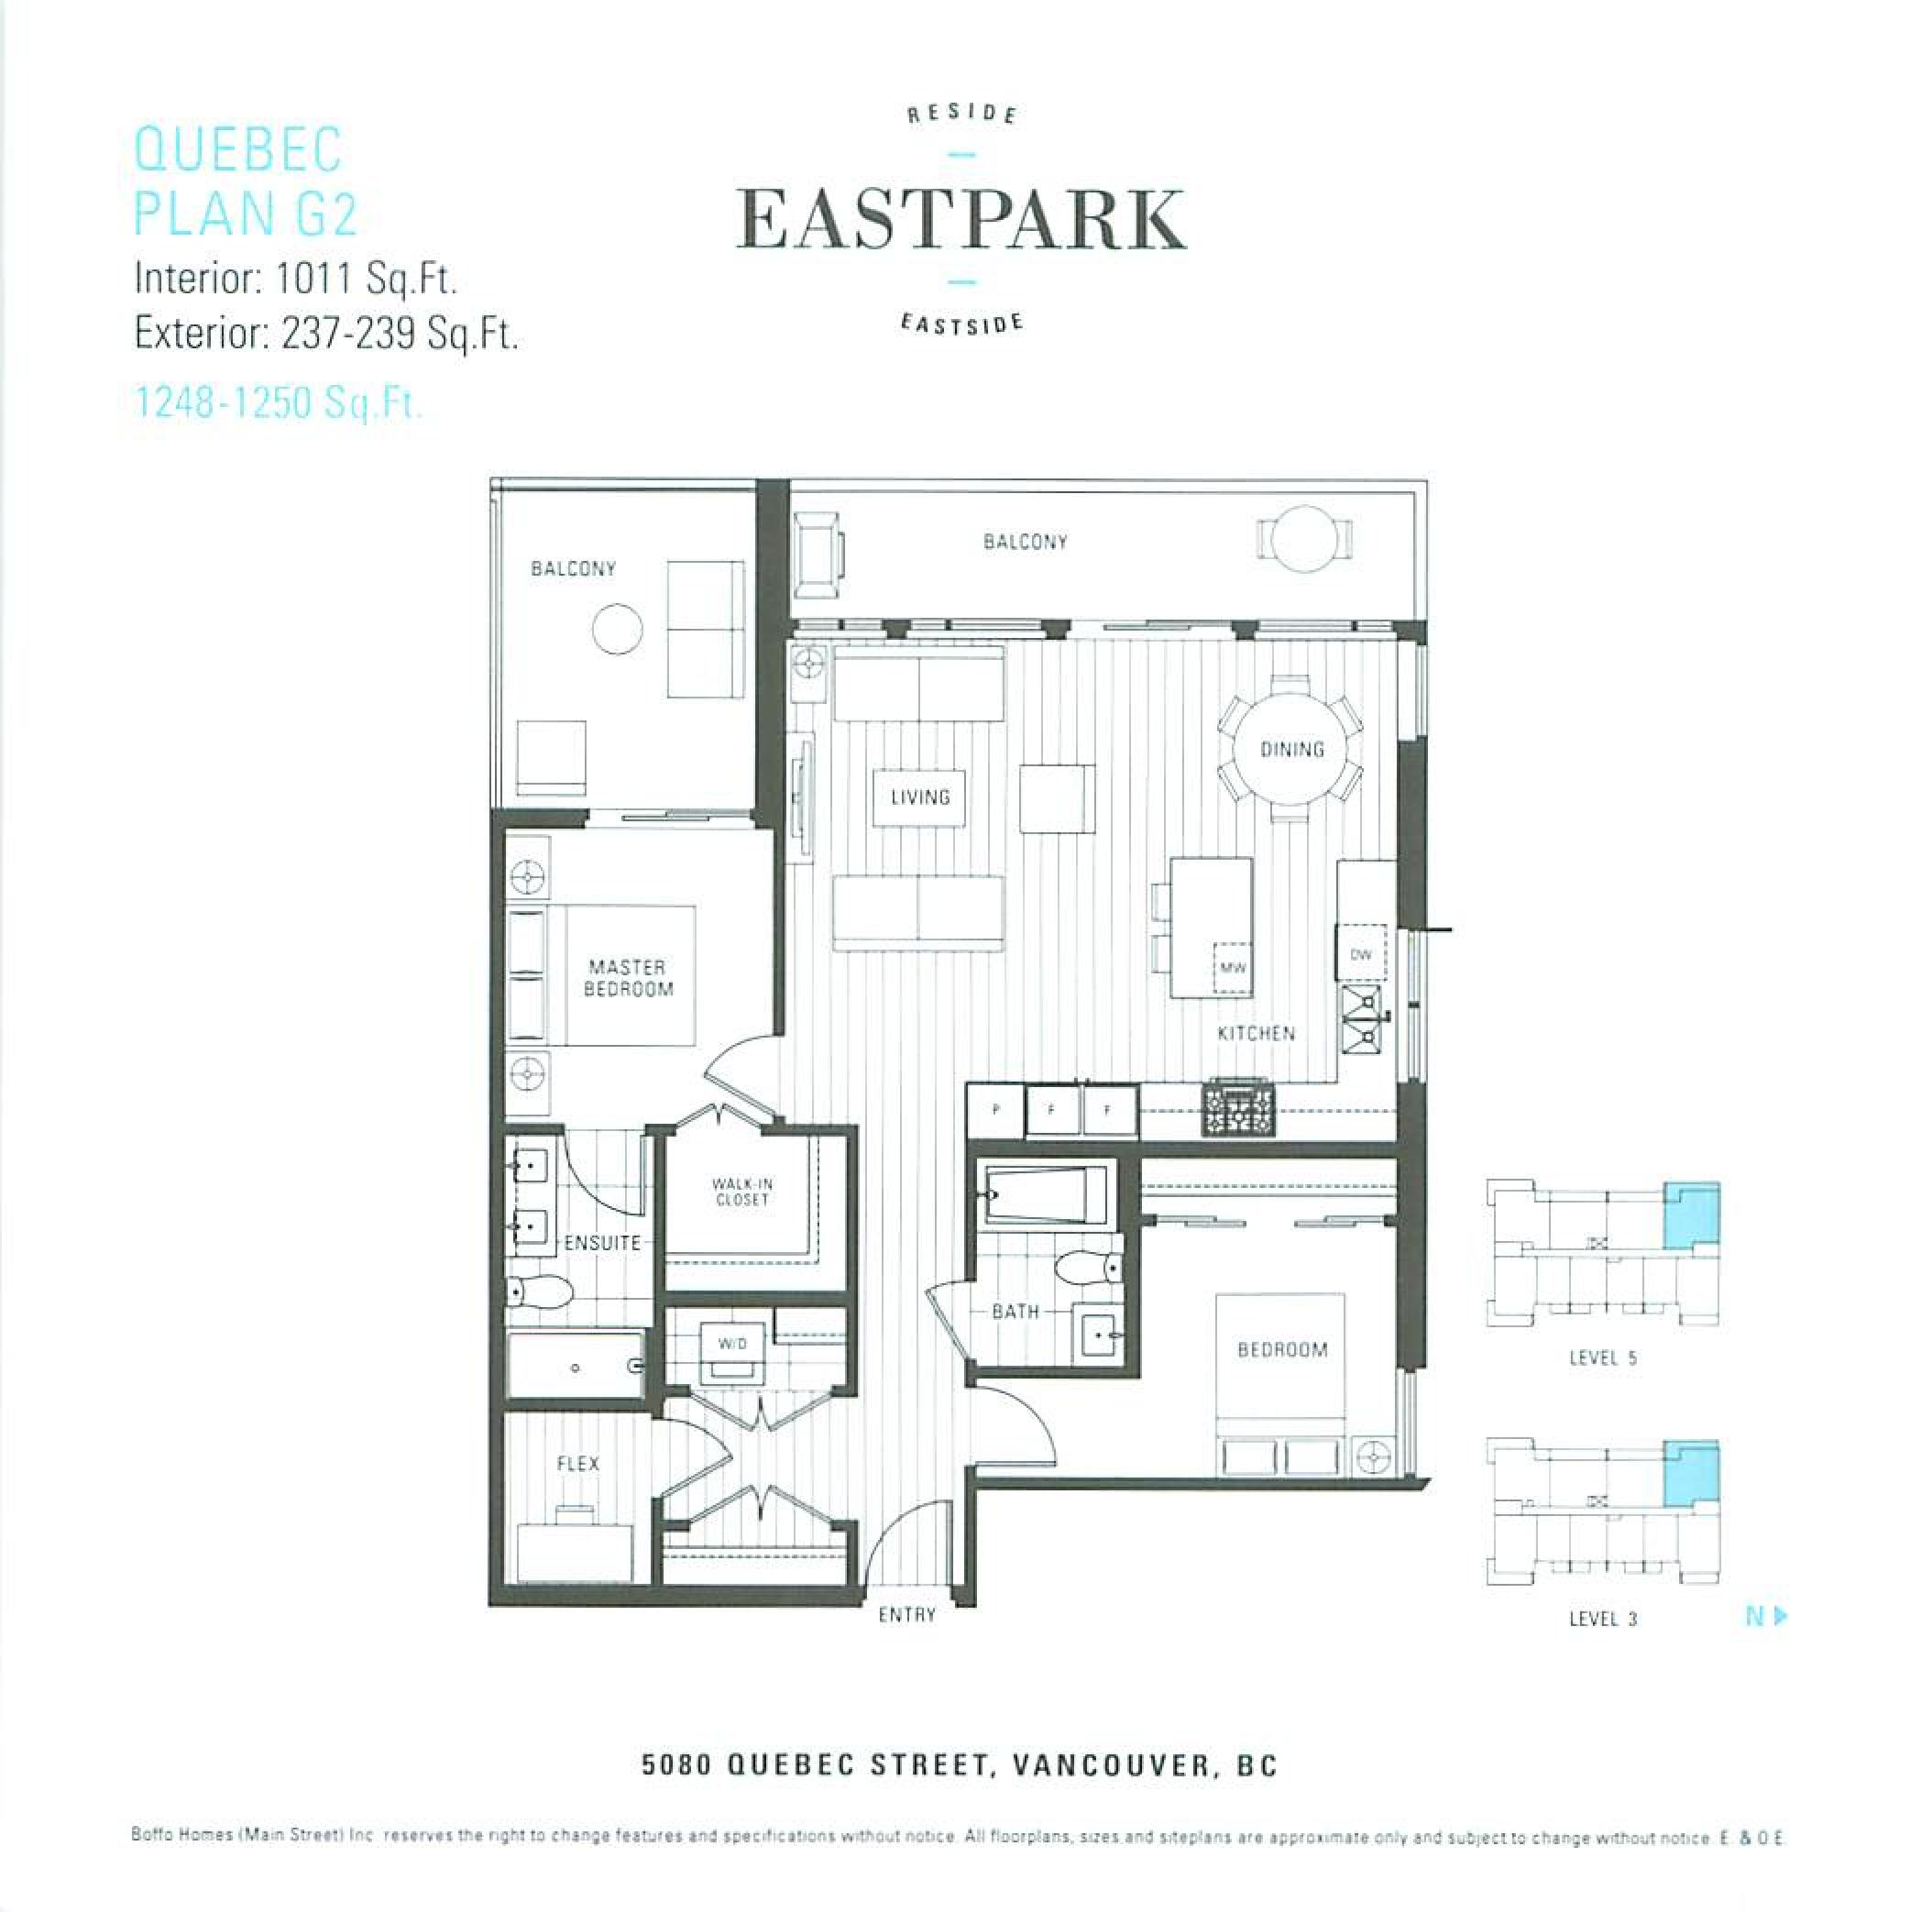 EastPark Quebec Smaller Floor Plans Mike Stewart-page-009